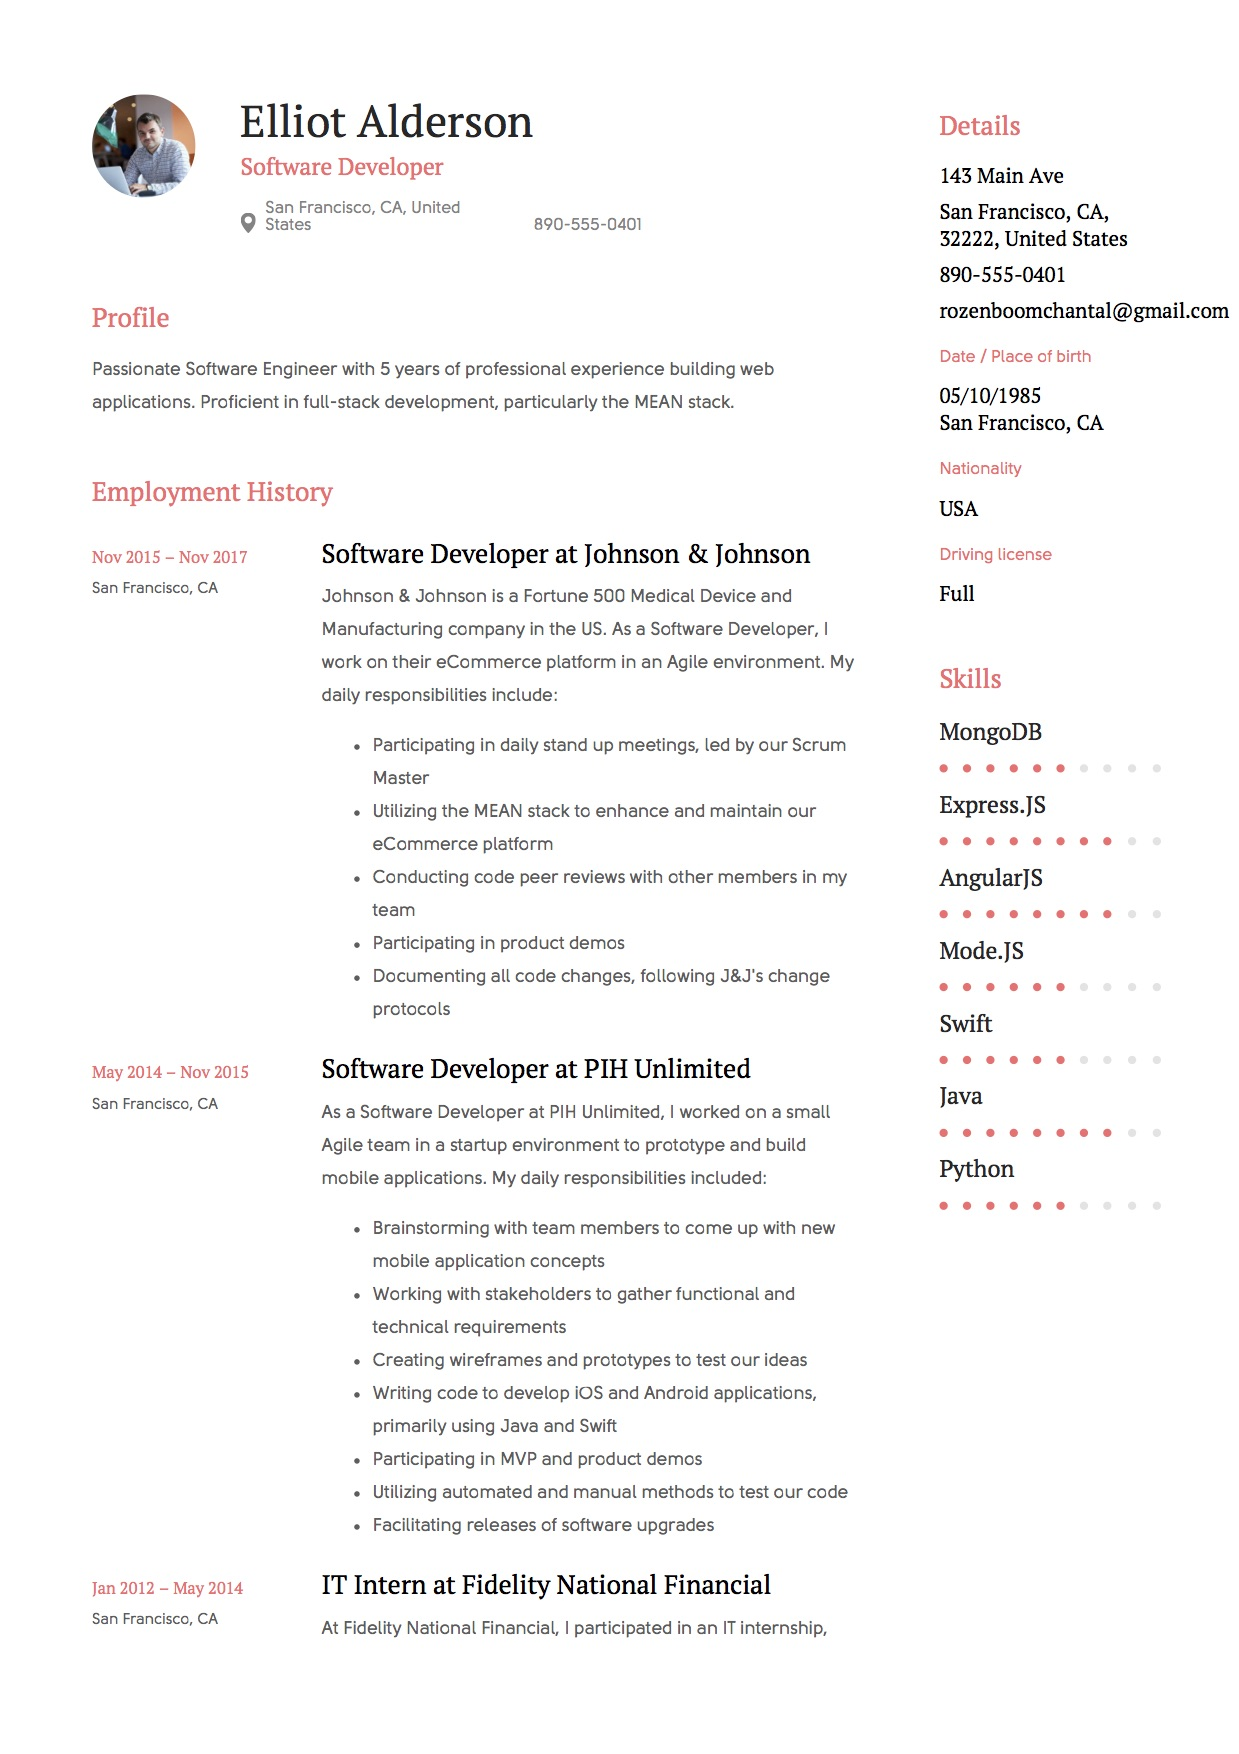 oftware Developer Resume Example(6)